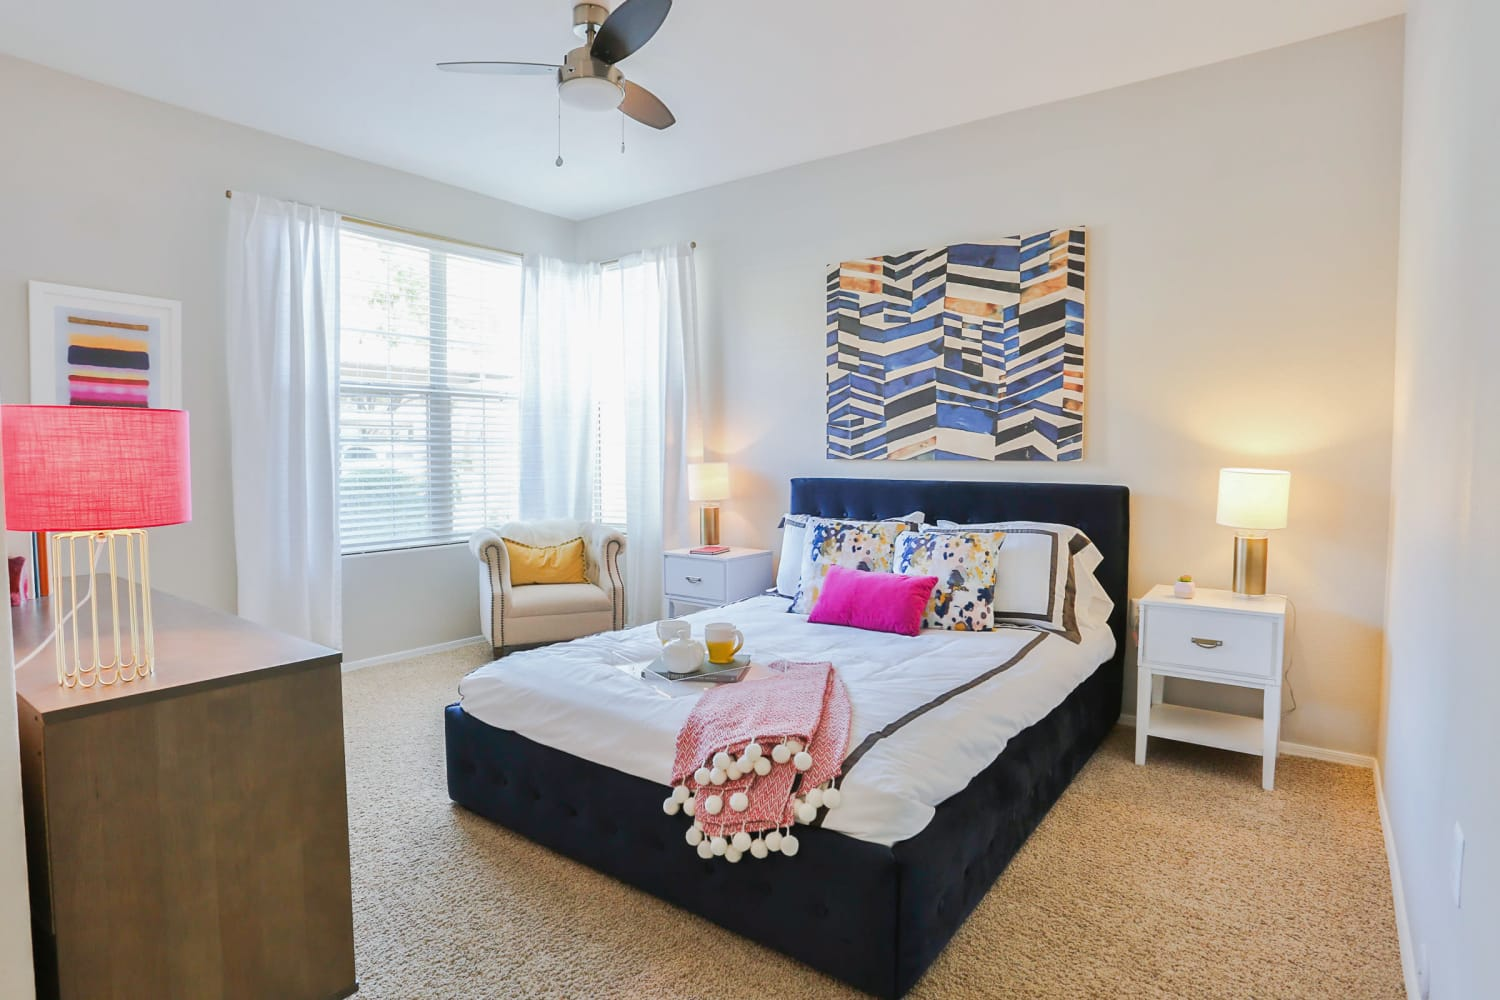 Ceiling fans are offered in the bedrooms at Sonoran Vista Apartments in Scottsdale, Arizona